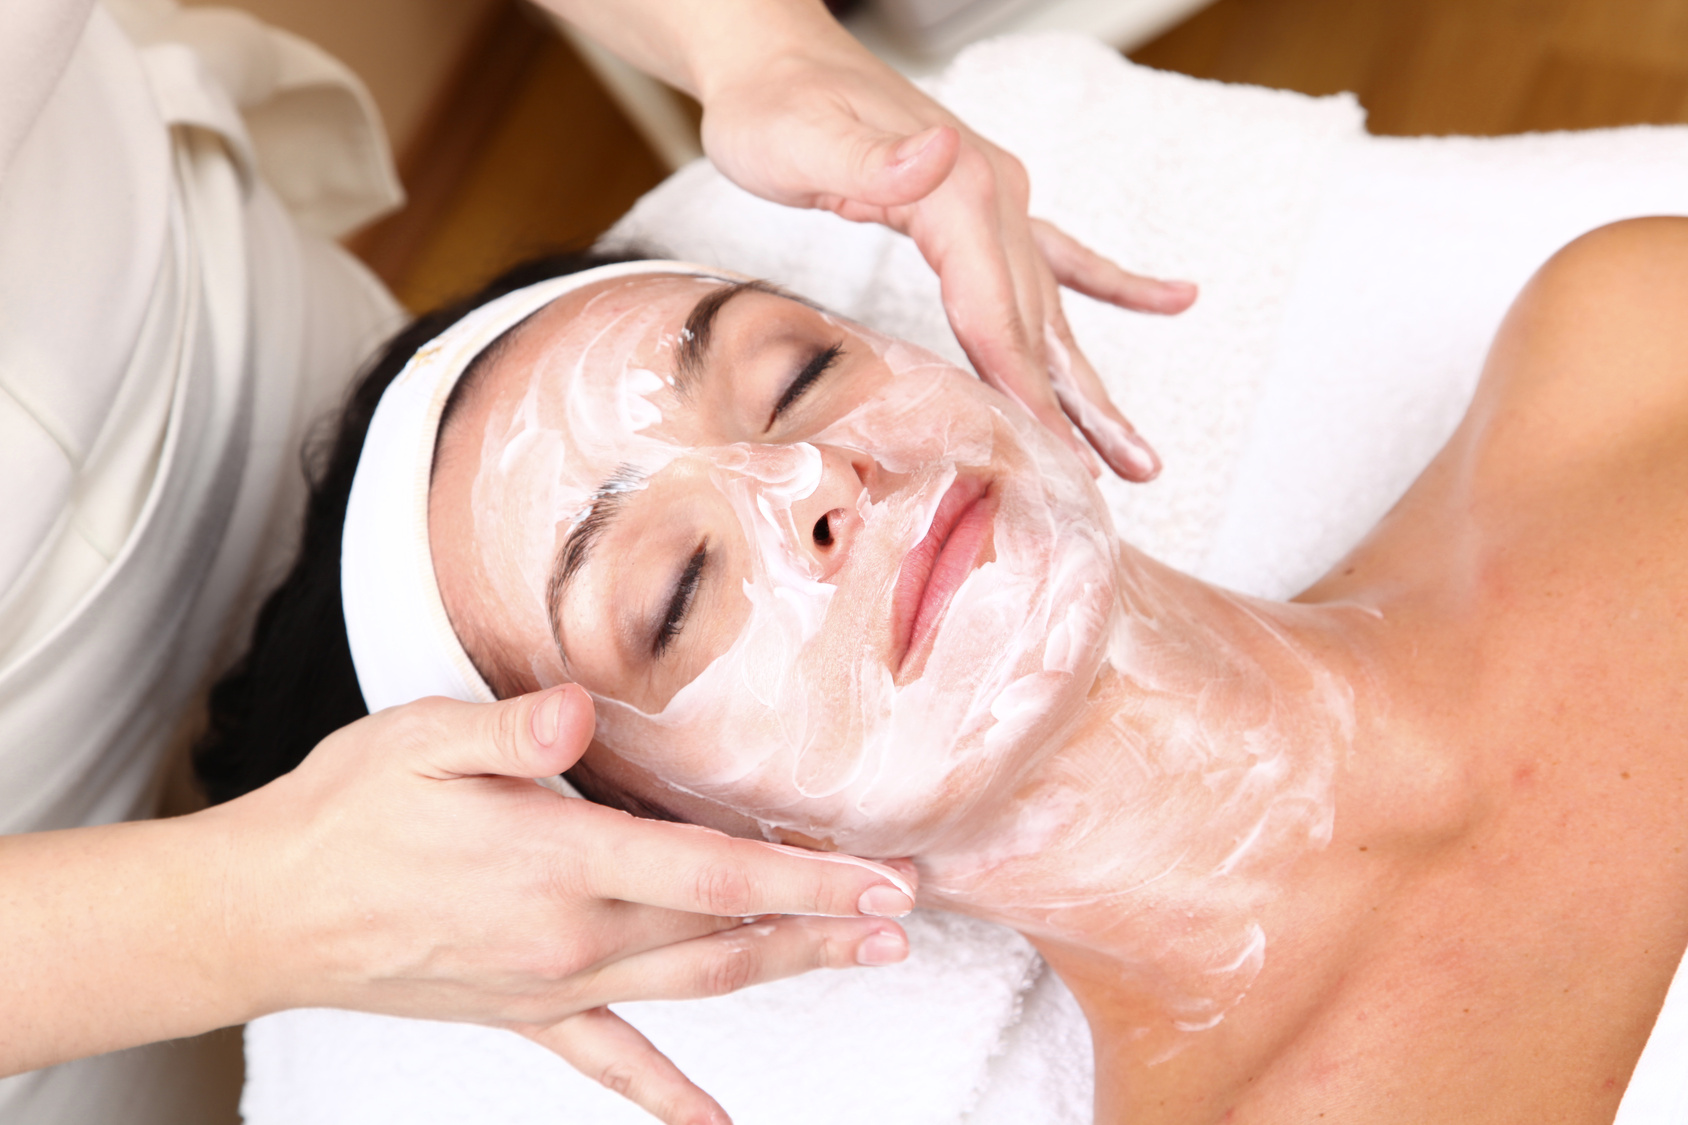 Lady receiving a facial